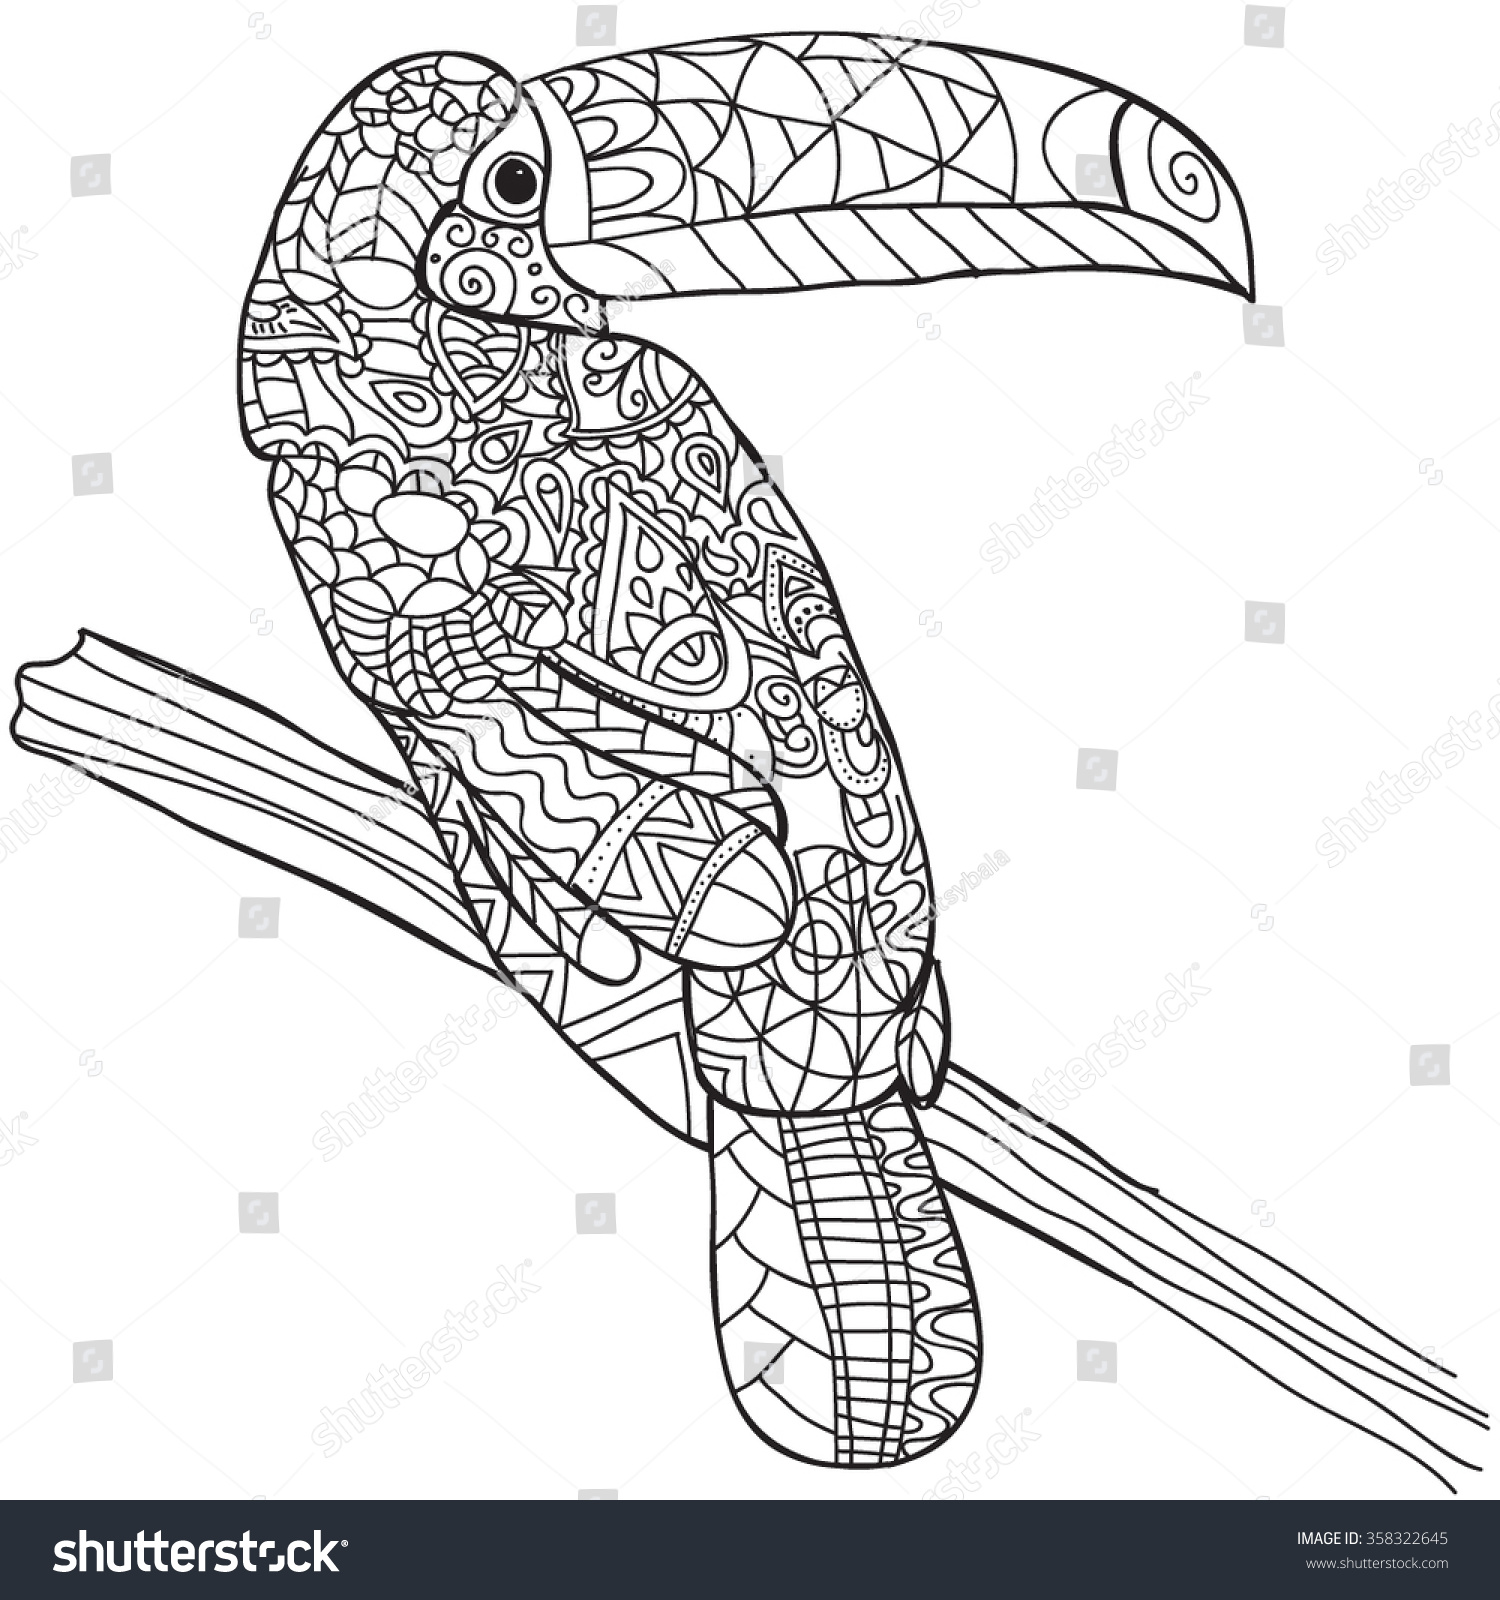 Hand Drawn Bird Toucan Isolated On Transparent Background Anti Stress Coloring Page Vector Monochrome